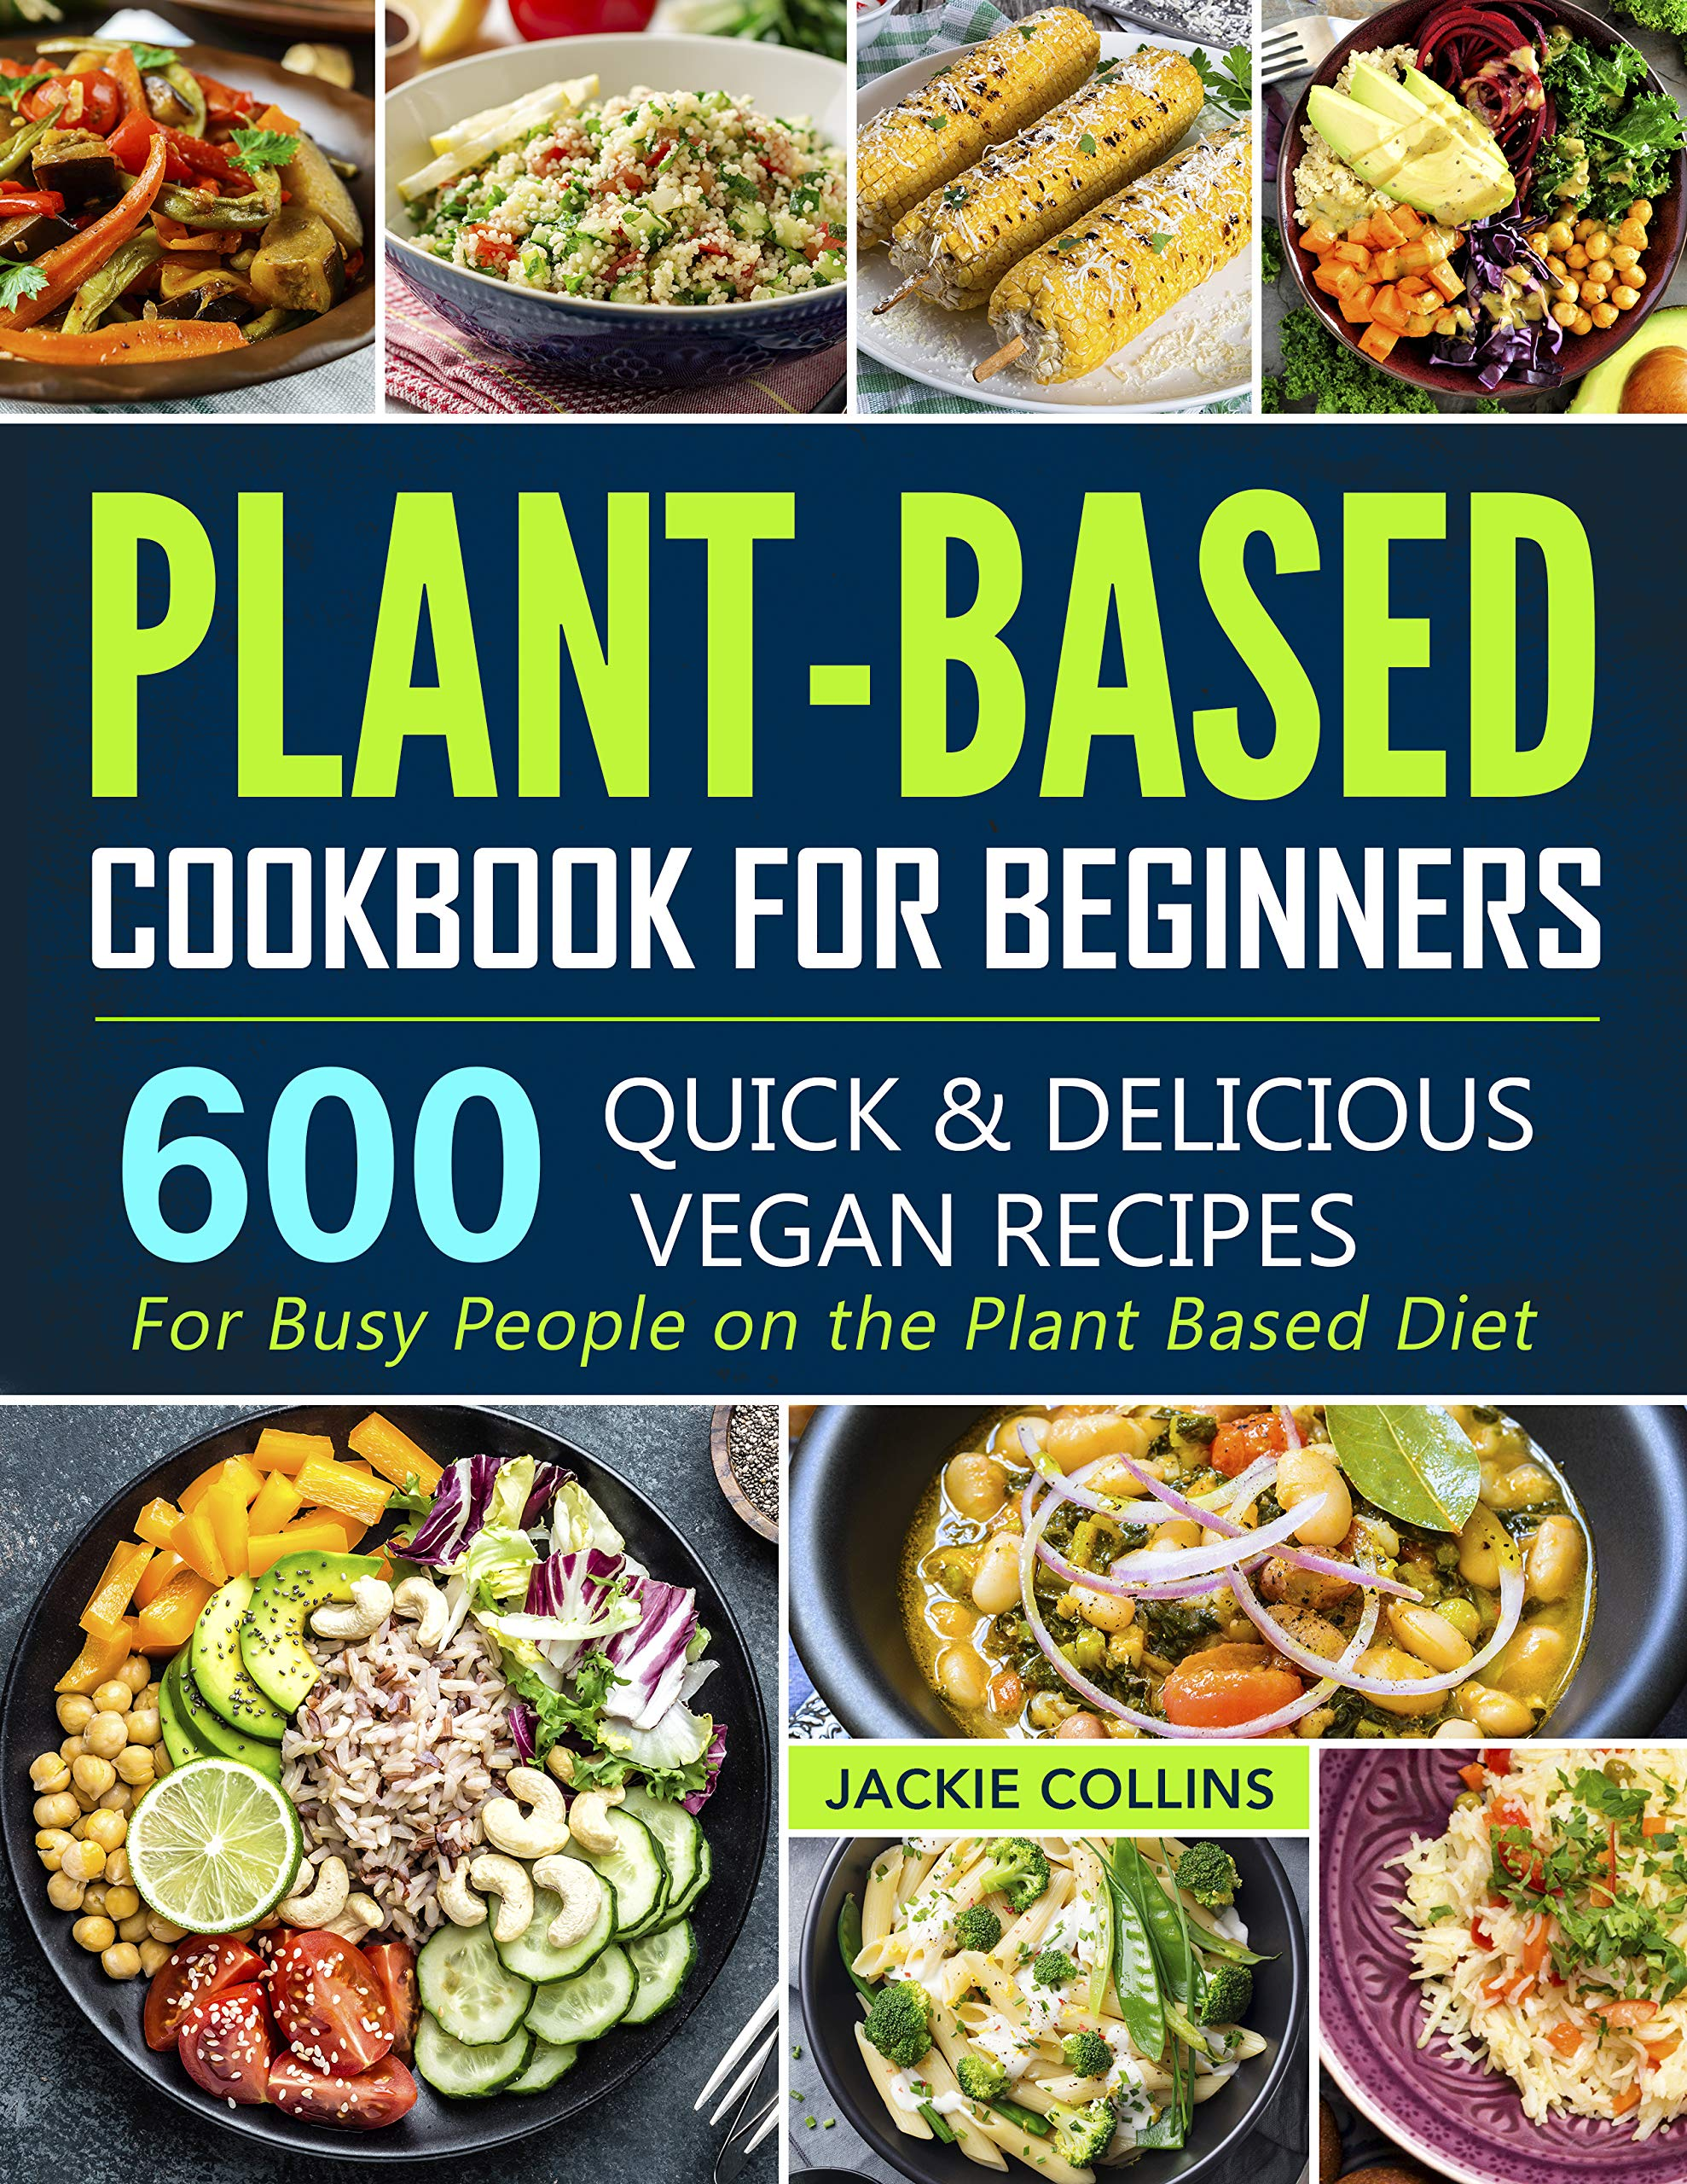 Plant-Based Cookbook for Beginners: 600 Quick & Delicious Vegan Recipes For Busy People on the Plant Based Diet